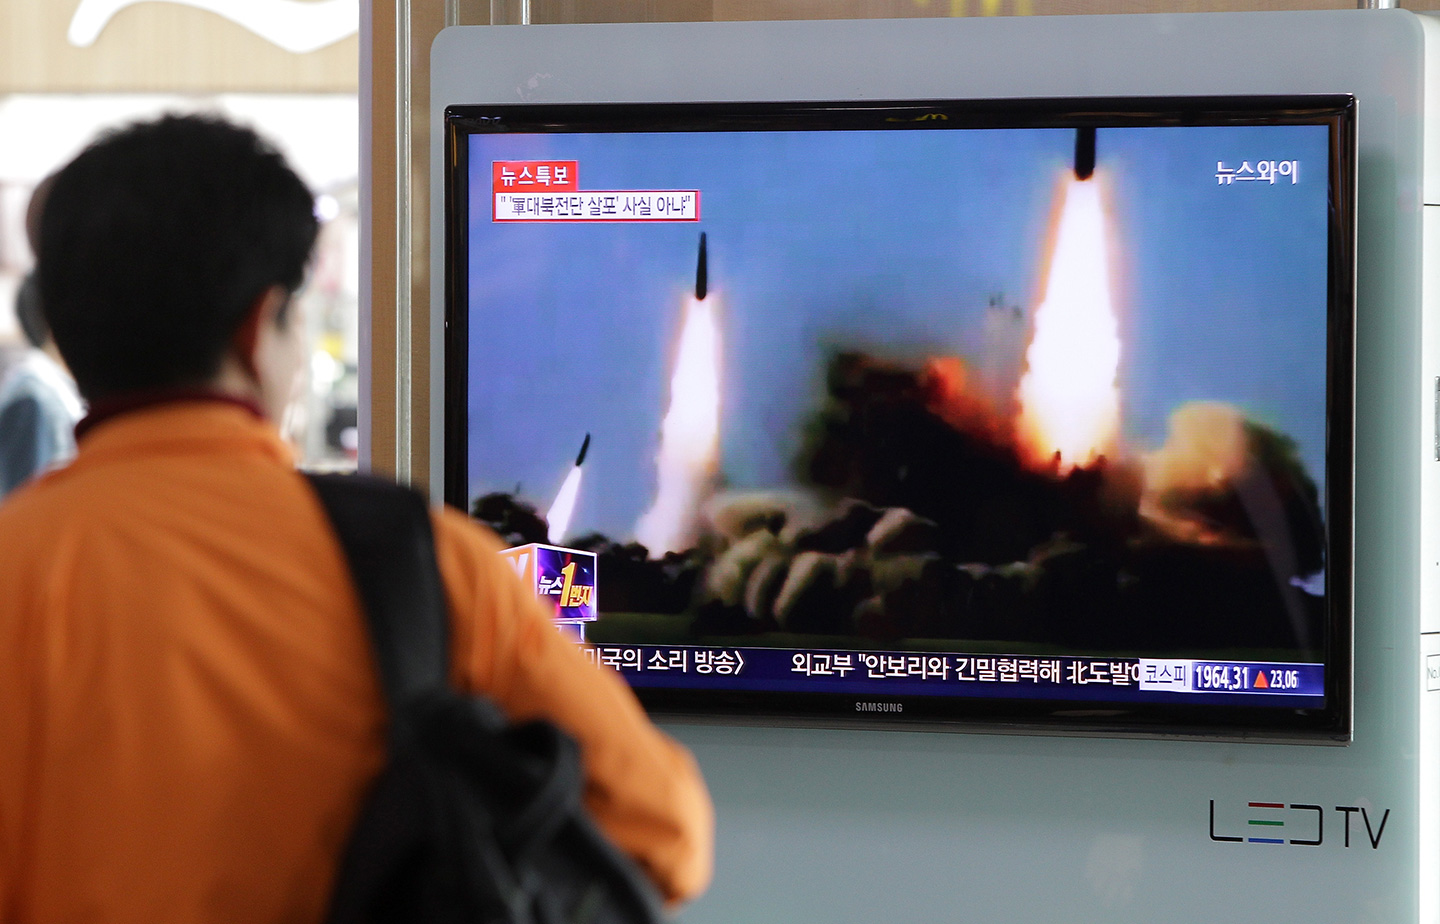 SEOUL, SOUTH KOREA - MARCH 26:  A Man watchs a television broadcast reporting the North Korean missile launch at the Seoul Railway Station on March 26, 2014 in Seoul, South Korea. North Korea test-launched two Nodong medium-range ballistic missiles into the sea off Korean peninsula's east coast on Wednesday morning, according to South Korea's defence ministry.  (Photo by Chung Sung-Jun/Getty Images)